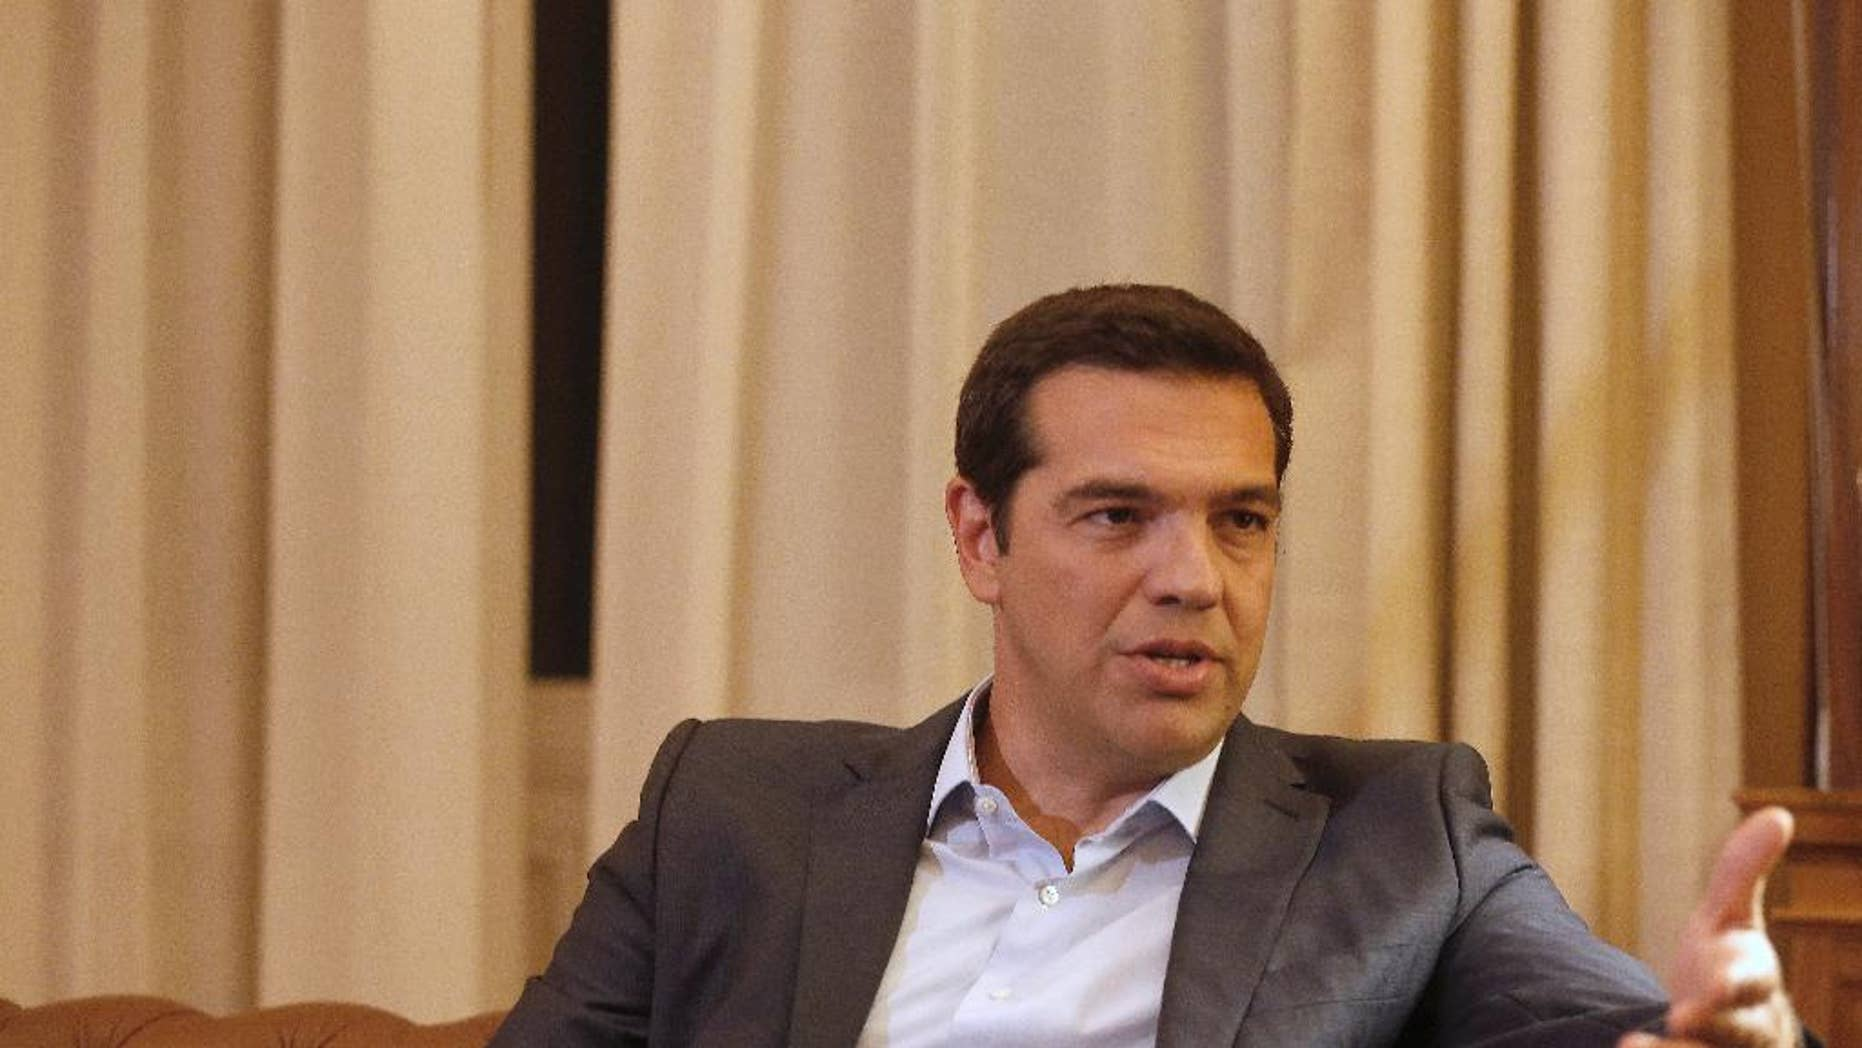 Greek Prime Minister Alexis Tsipras, meets with Greek President Prokopis Pavlopoulos, in Athens, Thursday, Aug. 20, 2015. Tsipras announced his government's resignation and called early elections Thursday, seeking to consolidate his mandate to implement a new three-year international bailout that sparked a rebellion within his radical left Syriza party. (AP Photo/Petros Giannakouris)